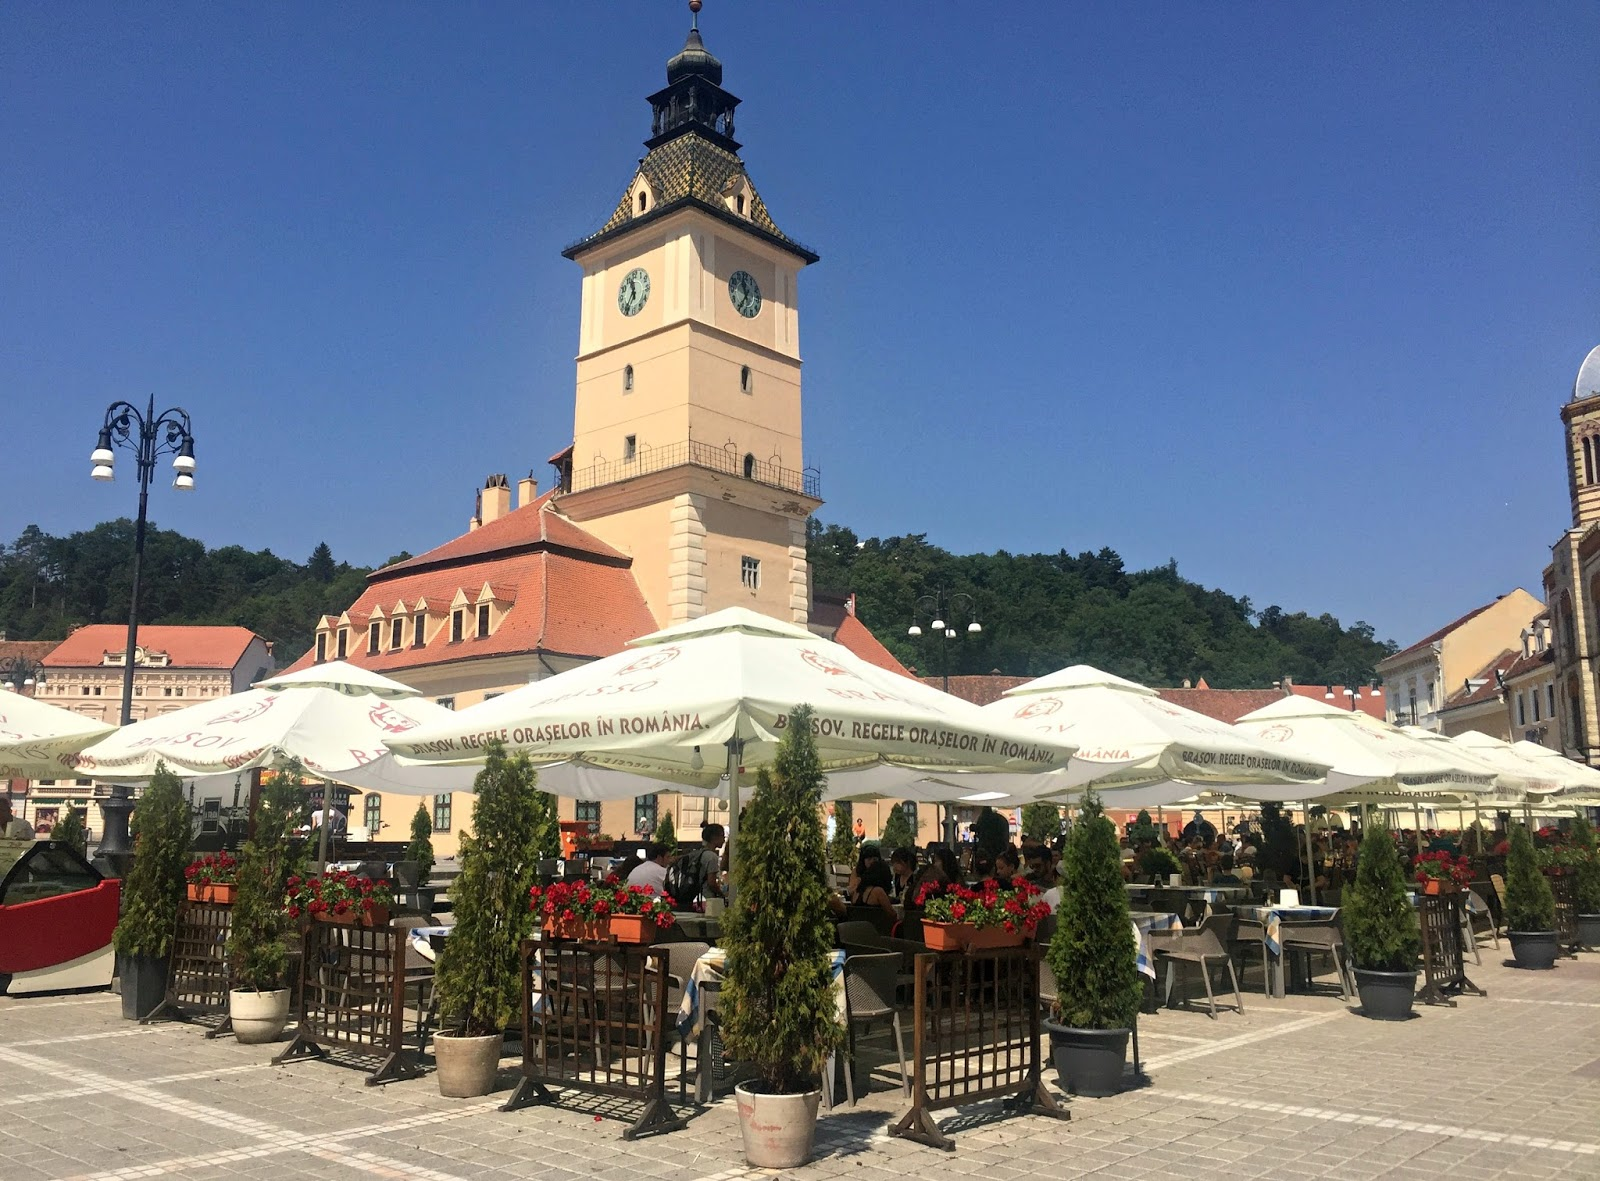 Formidable Joy - UK Fashion, Beauty & Lifestyle Blog | Formidable Joy | Travel | Romania | Brasov |